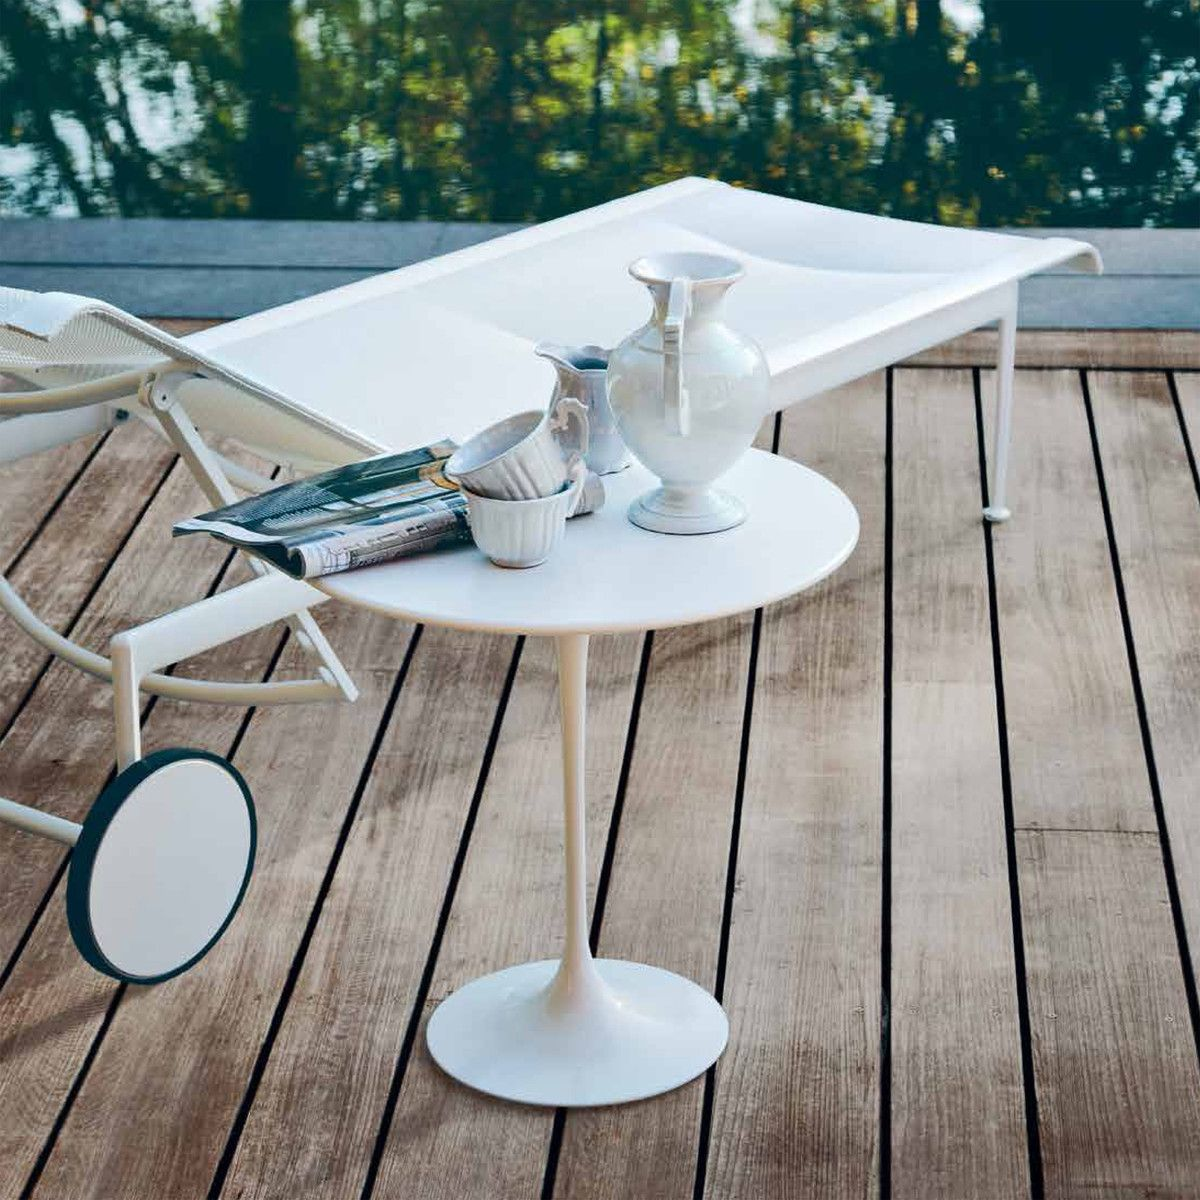 Knoll 1966 Adjustable Chaise Lounge Saarinen Side Round Table A Classic Pairing Now Knoll Outdoor Furniture Modern Outdoor Furniture Outdoor Coffee Tables